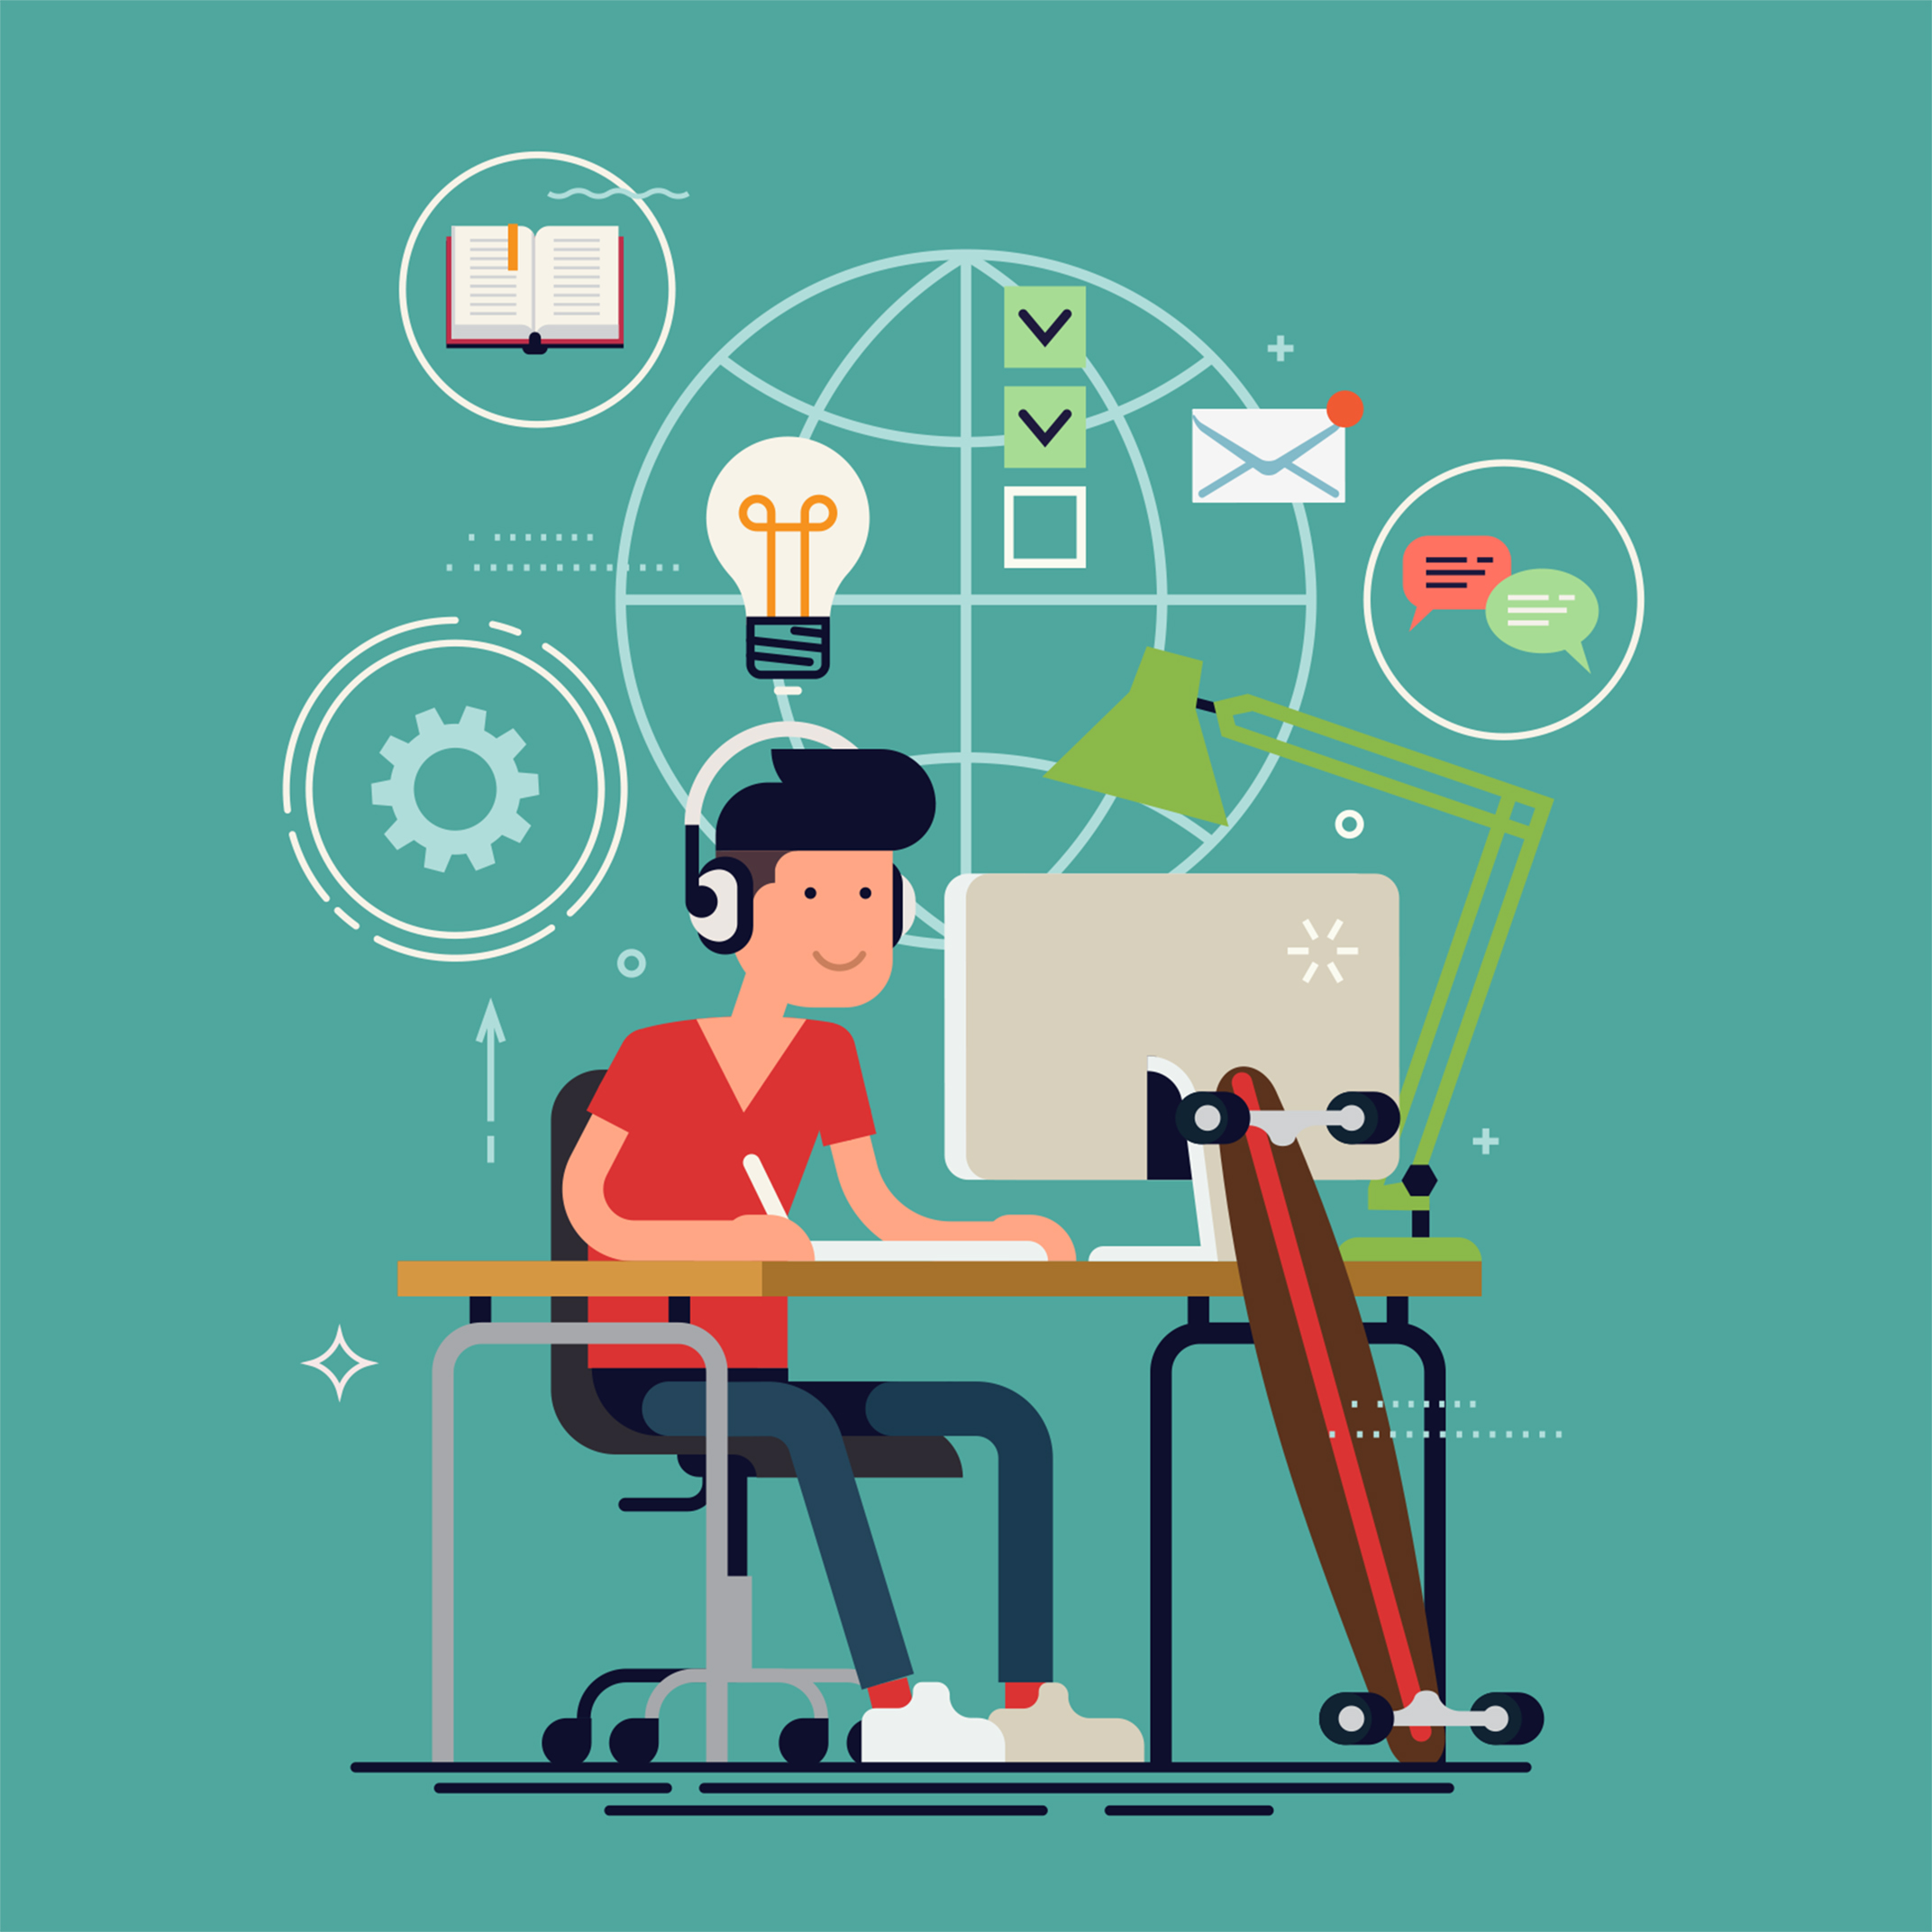 how music affects your productivity essay How music enhances your brain and boosts productivity have you incorporated music into your workspace or study space let's understand how music supports the brain and the places where it serves .